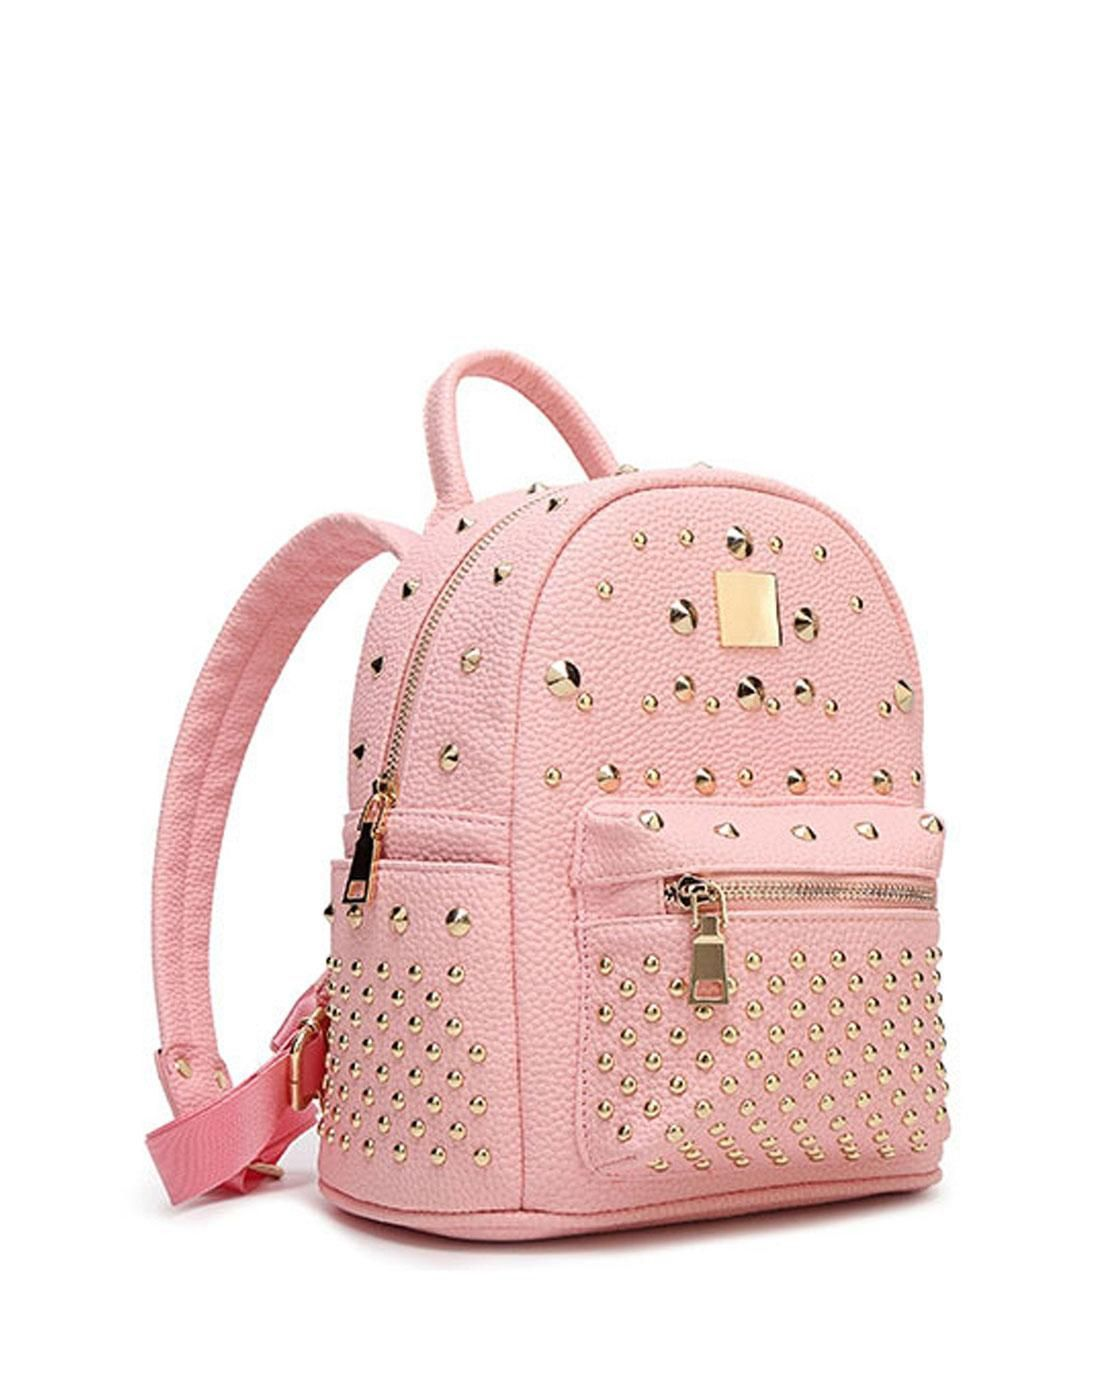 7487eb9381e7  AdoreWe  VIPme Backpacks - SVMONO Pink School Bags Backpacks for College  Girls - AdoreWe.com